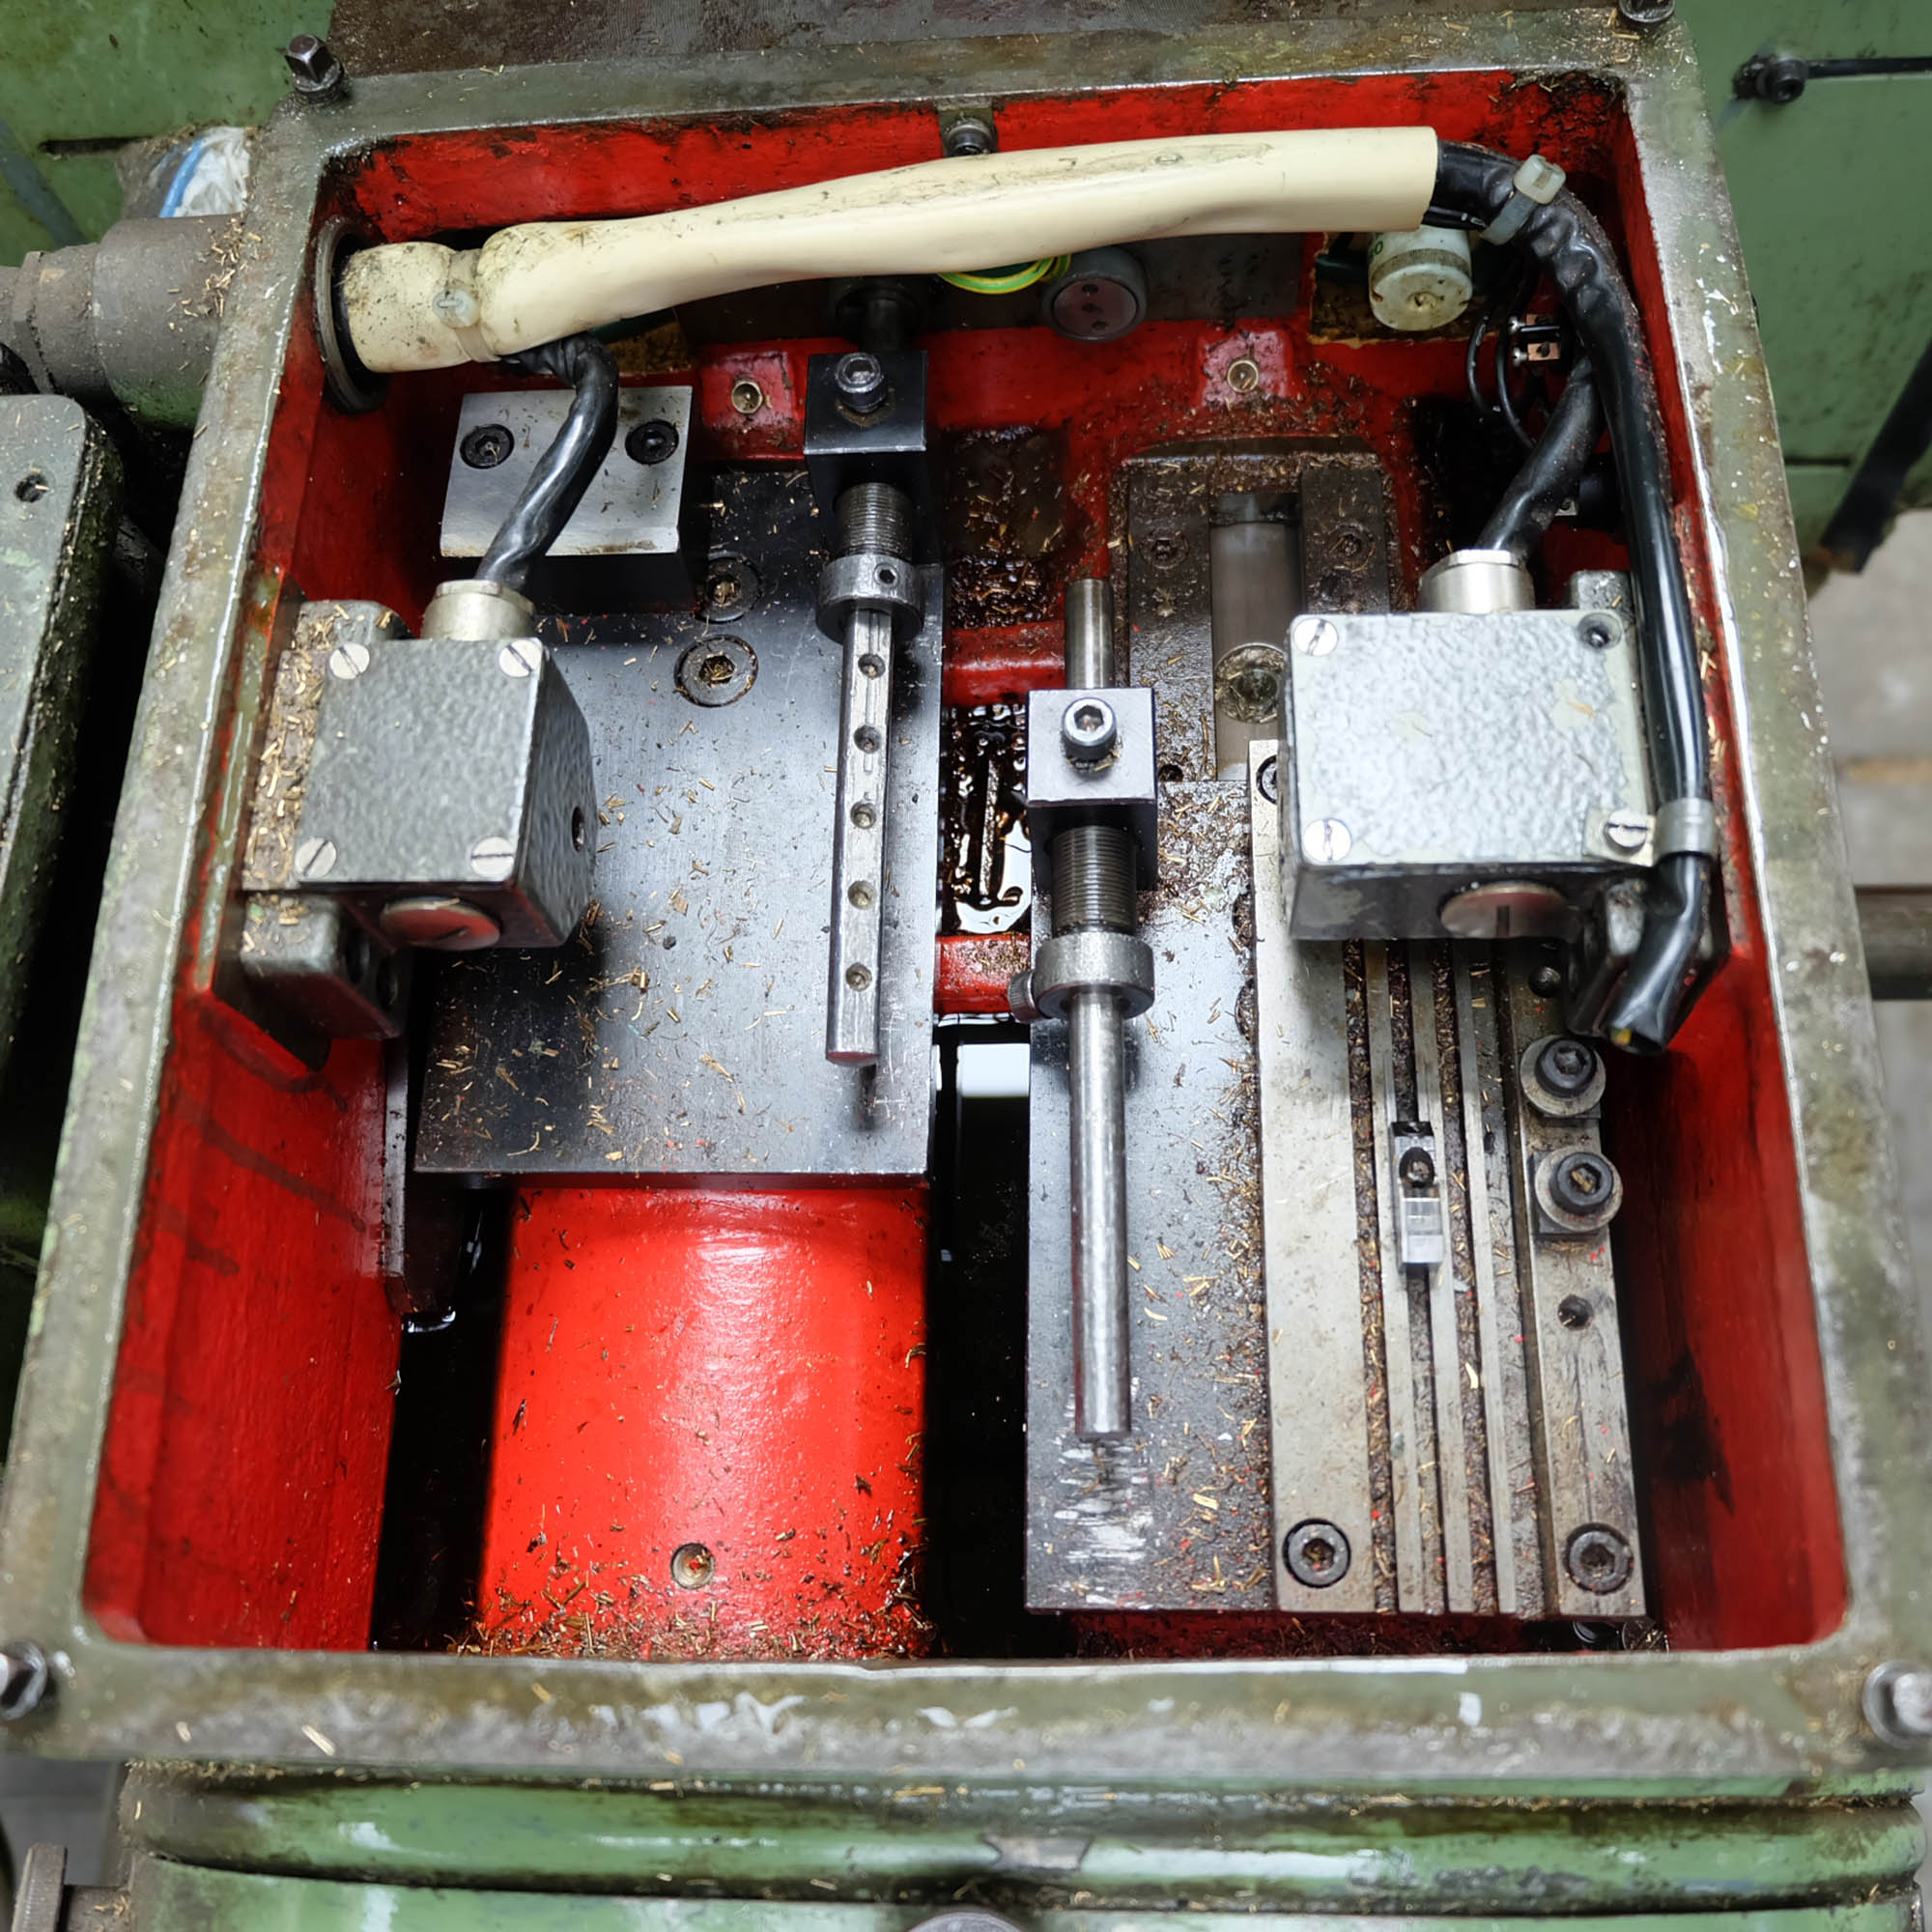 Jonshoff Model VH 111. Four Spindle Semi-Automatic Turning and Drilling Machine. - Image 6 of 9